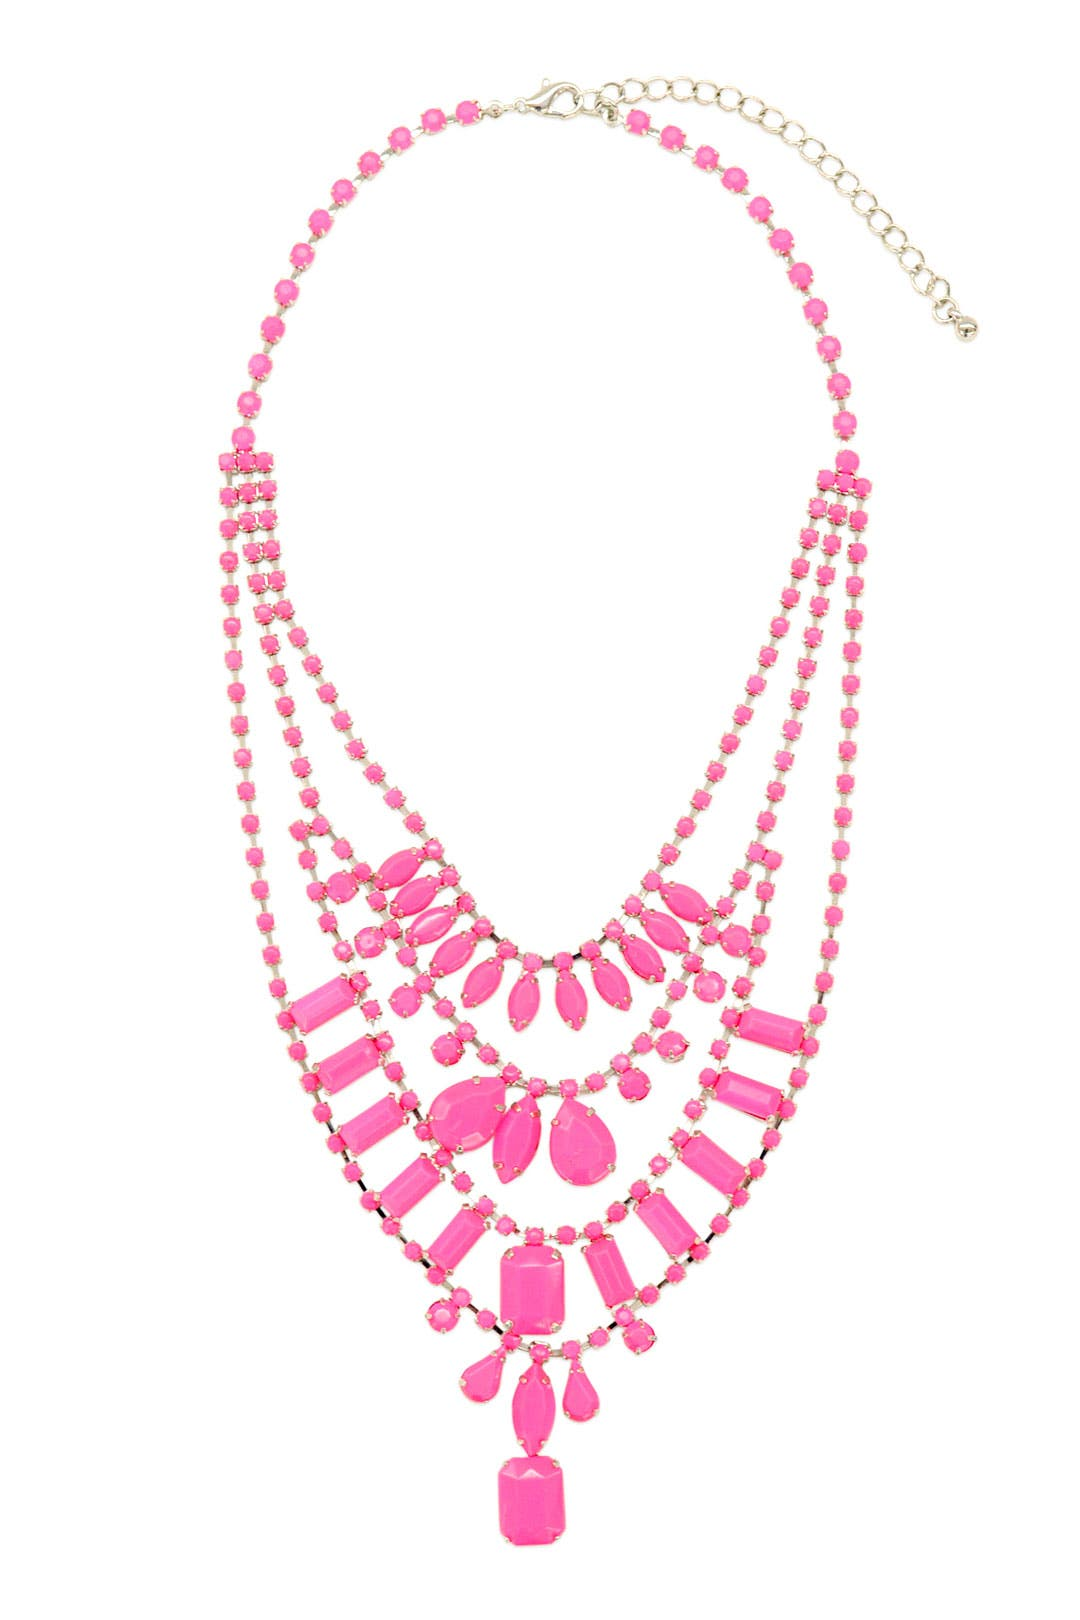 Neon Pink Lights Necklace by Adia Kibur